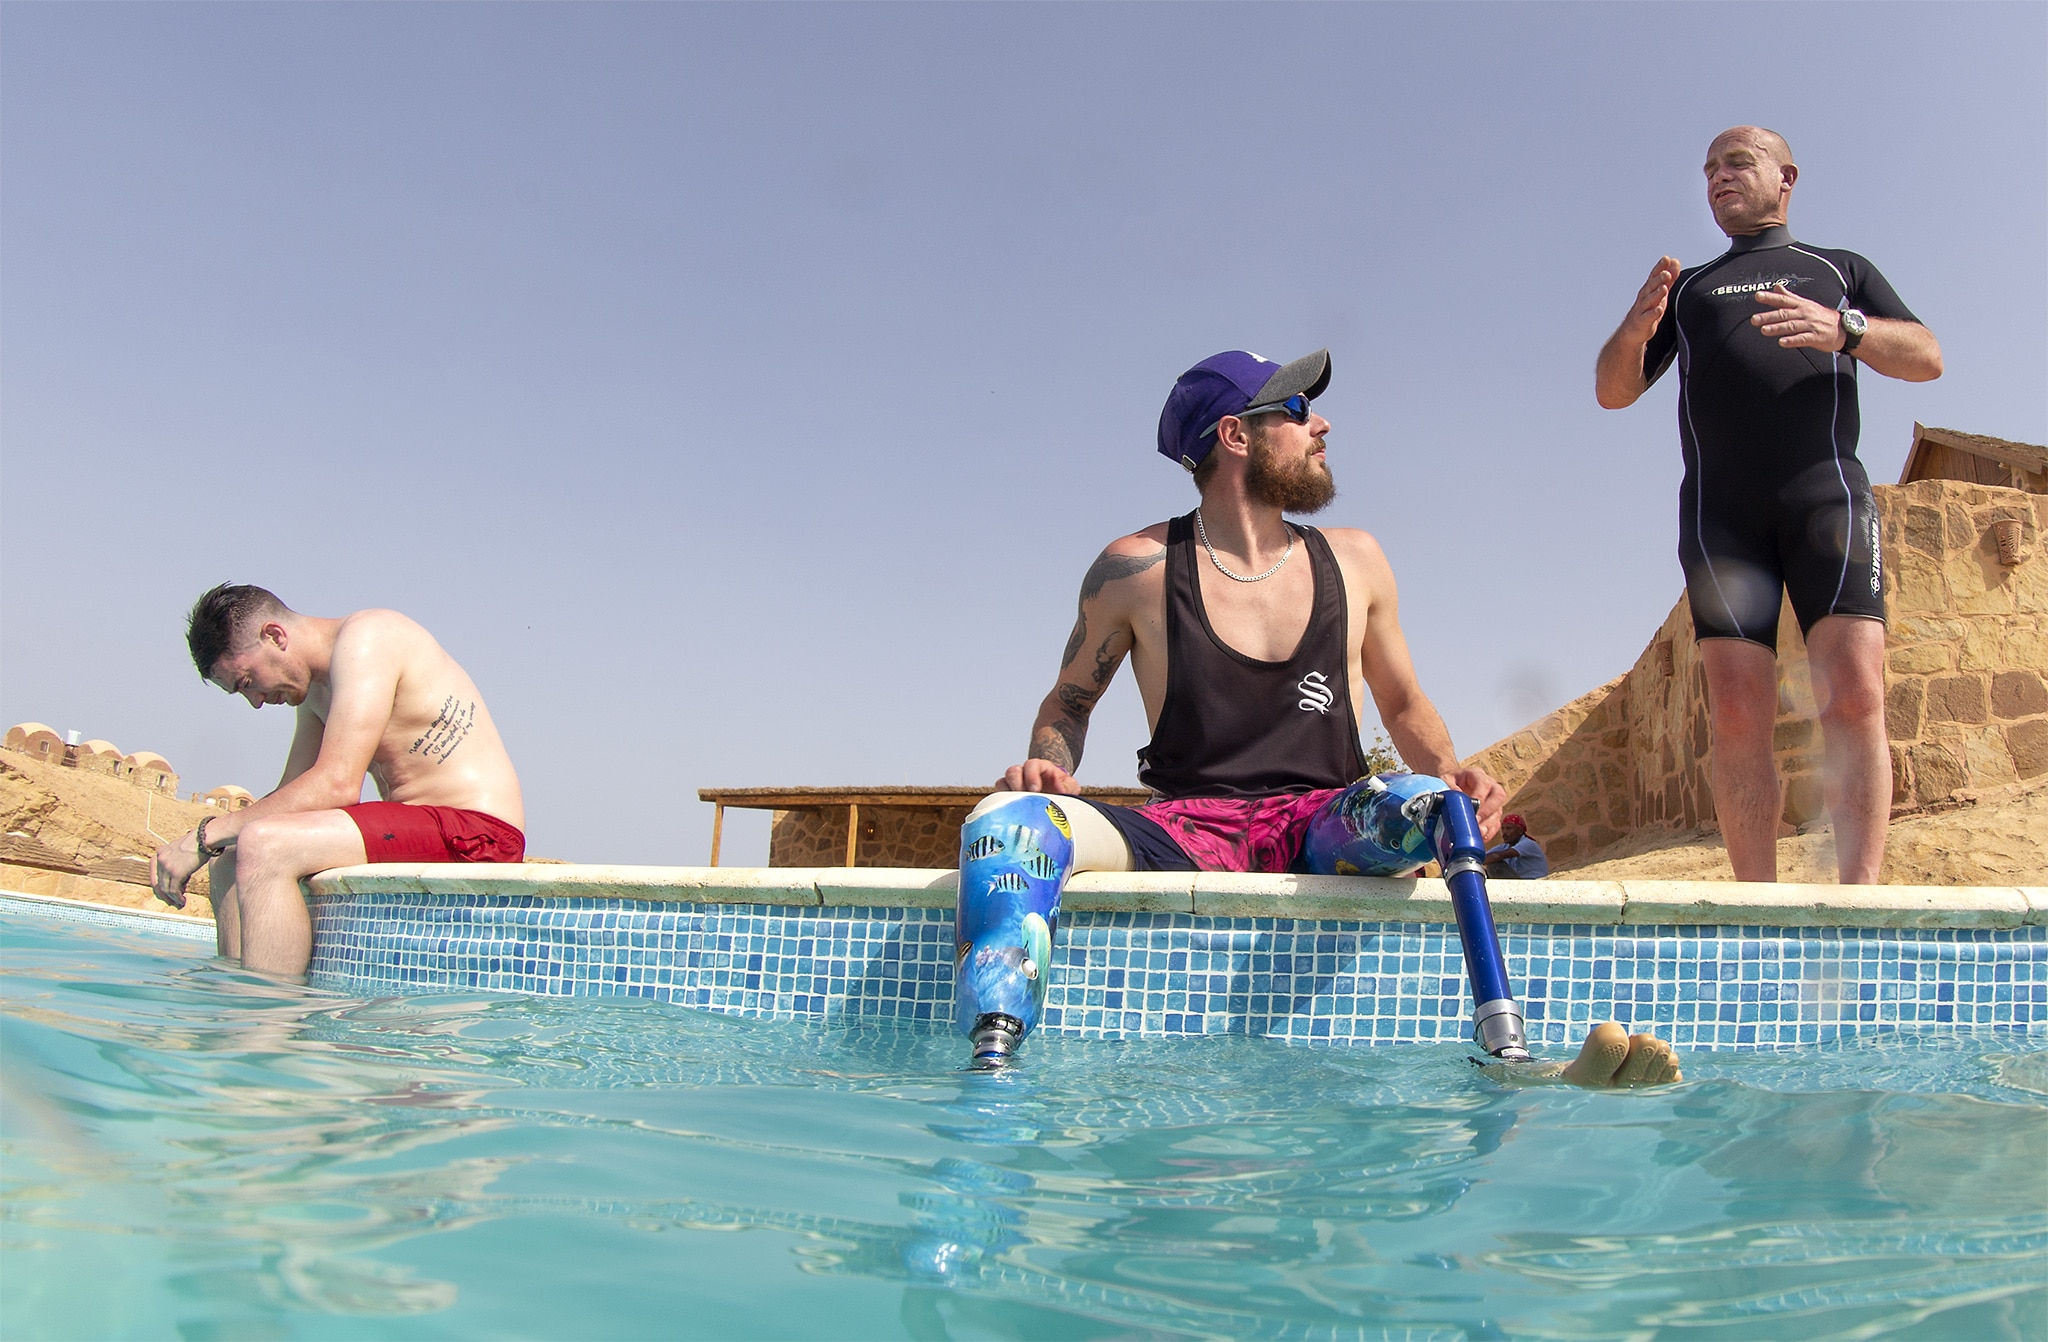 Deptherapy Ambassadors Chris Middleton and Tom Swarbrick with Instructor Andy Frith on a previous expedition to Roots Red Sea. Photo – Dmitry Knyazev for Deptherapy